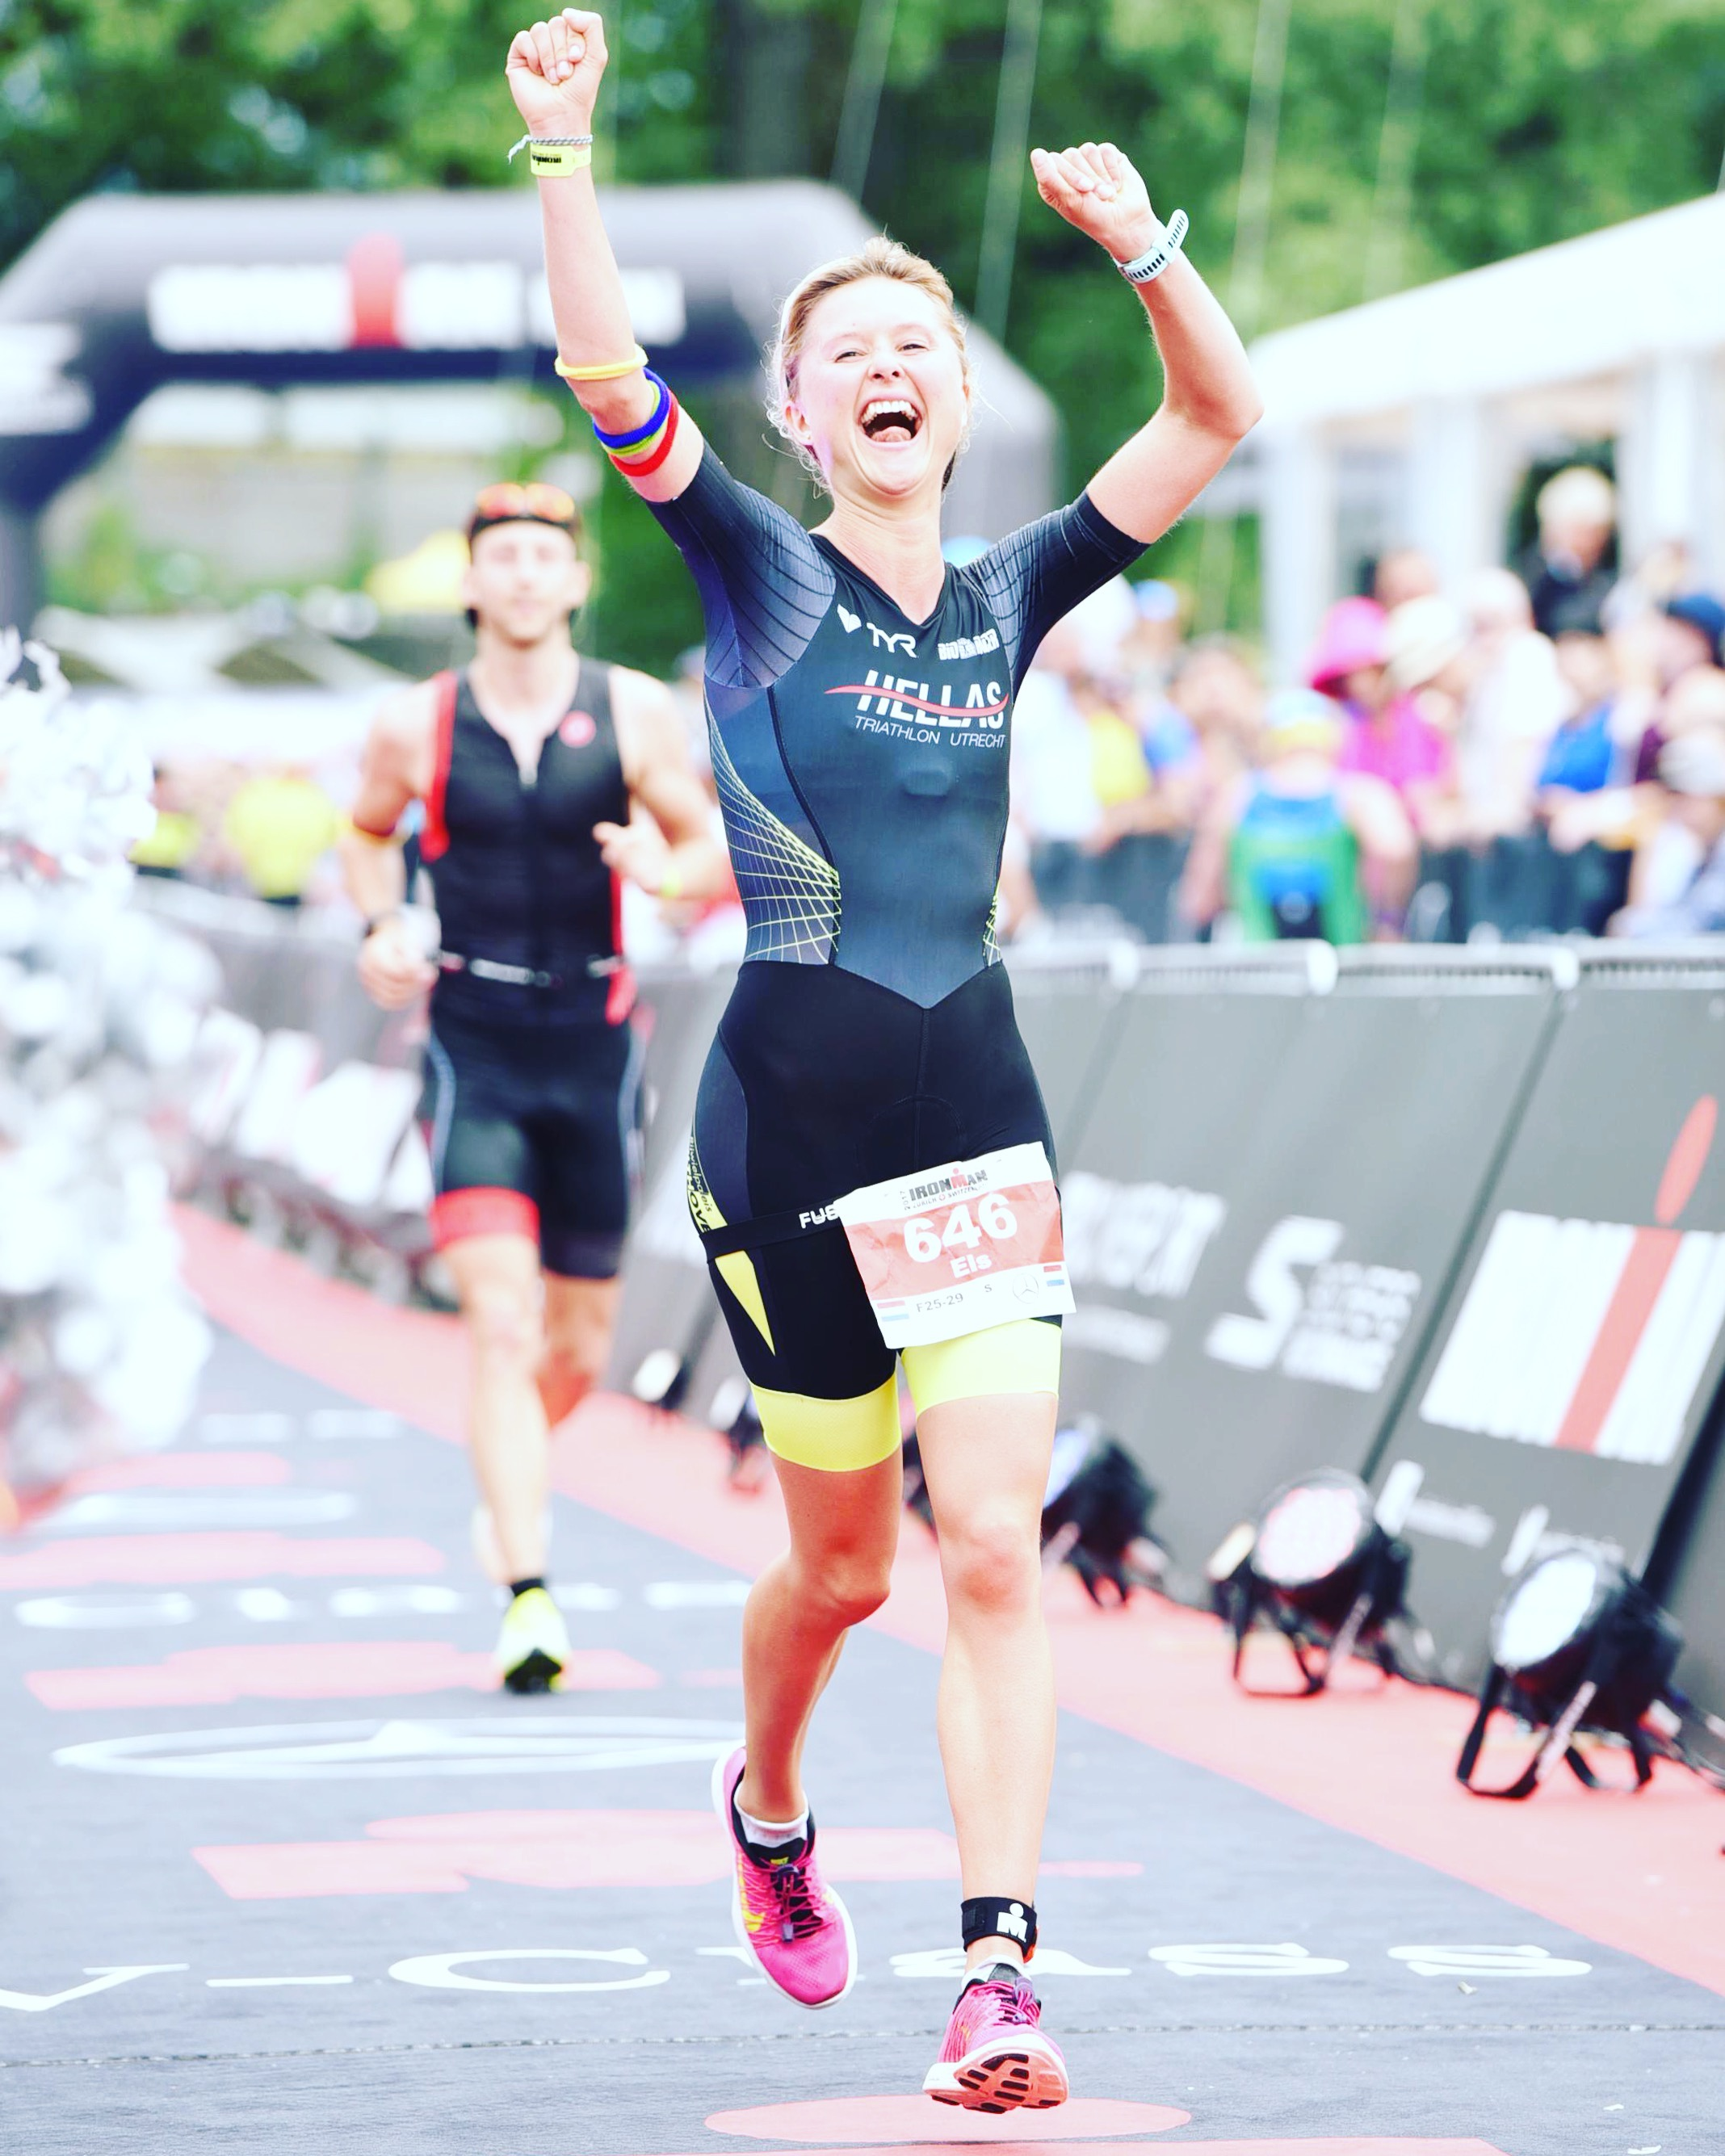 Ironman Switzerland, Full Distance, 4th overall, 1st Agegrouper, 1st Agegrouper 25-29